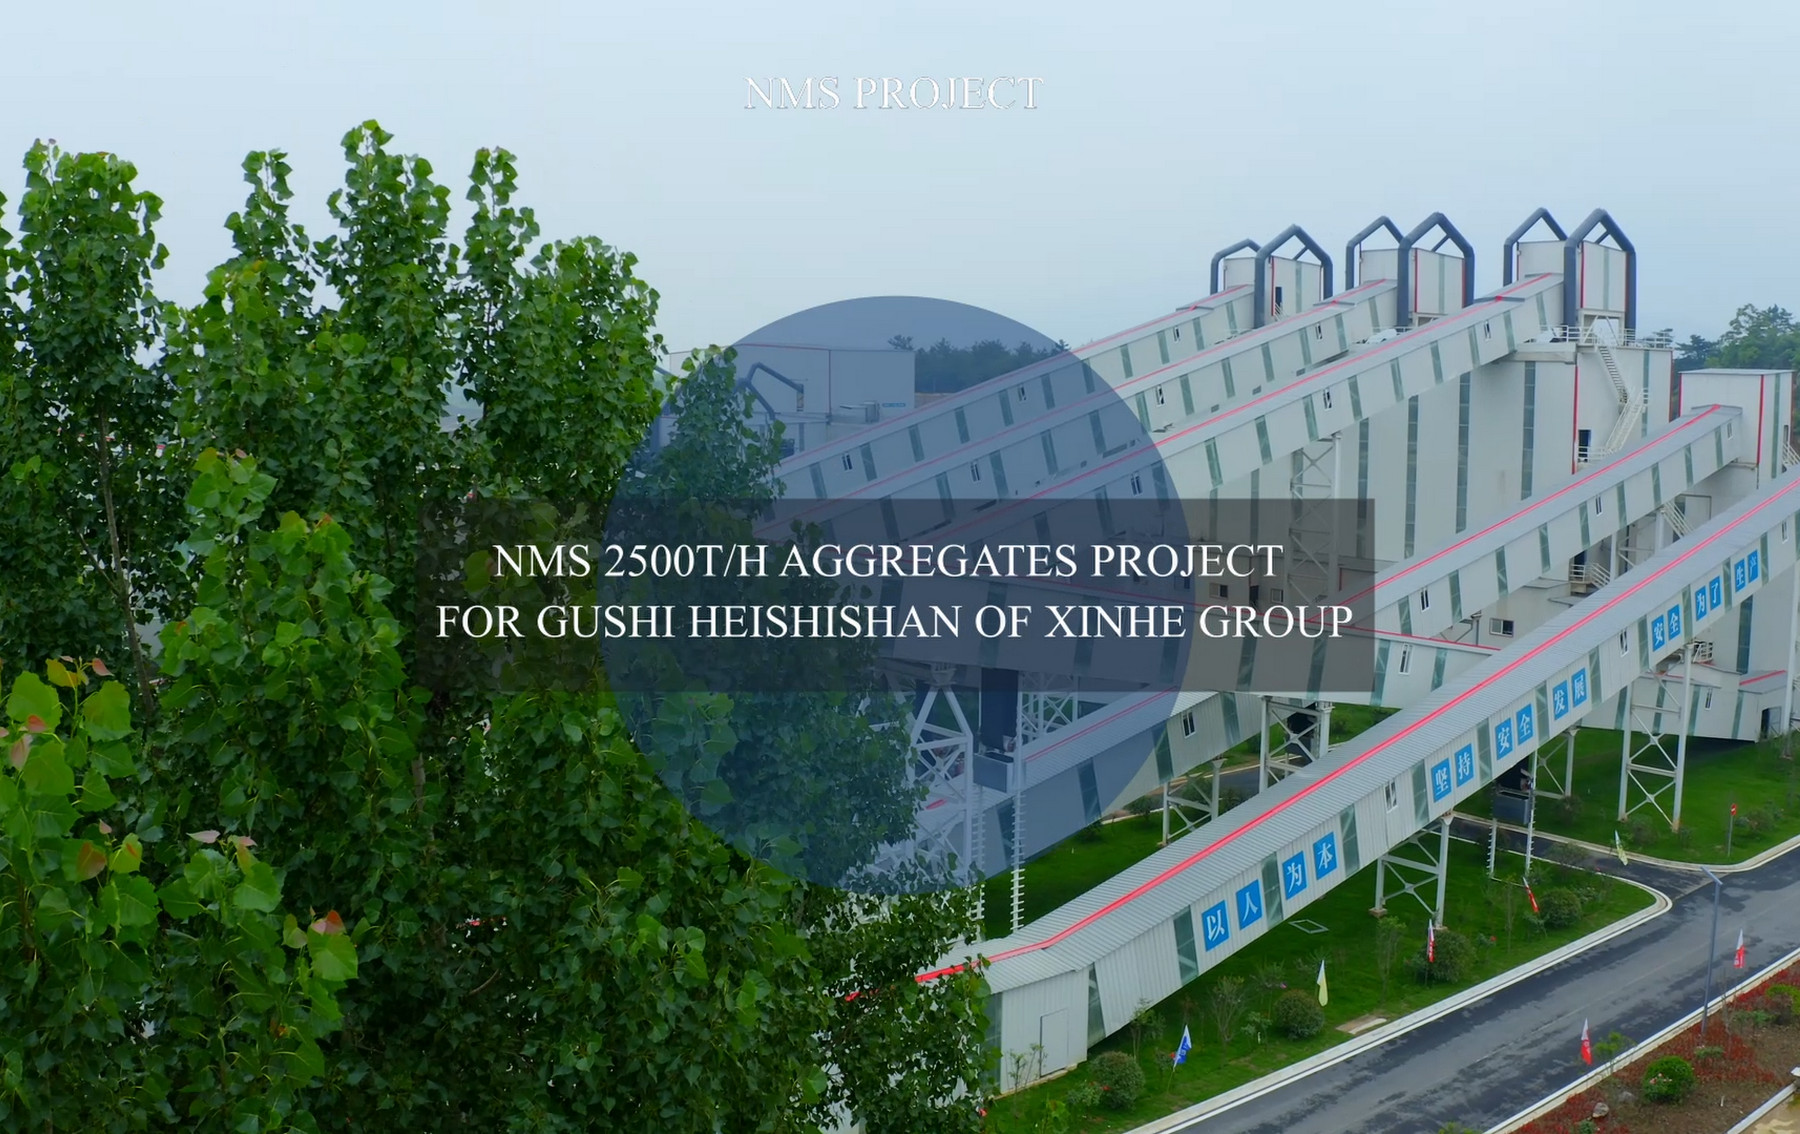 2500 t/h Aggregates Project for Gushi Heishishan of Xinhe Group